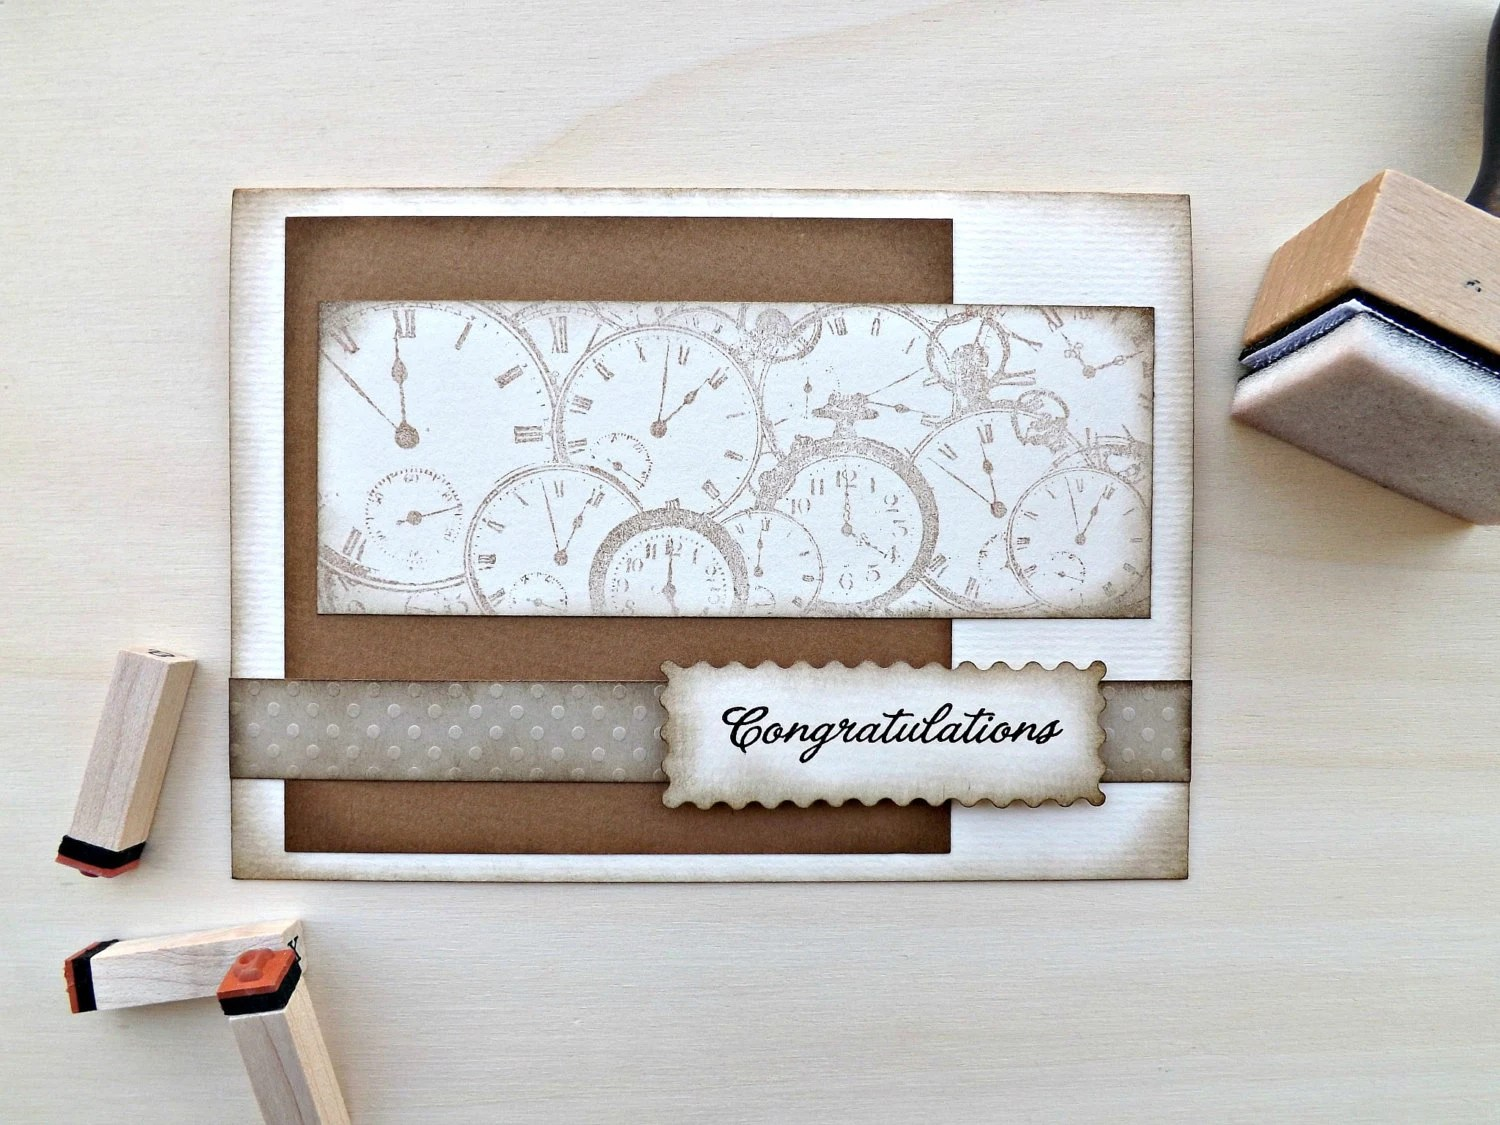 CONGRATULATIONS CARD Handmade Graduation card Greeting cards Watches Brown Paper